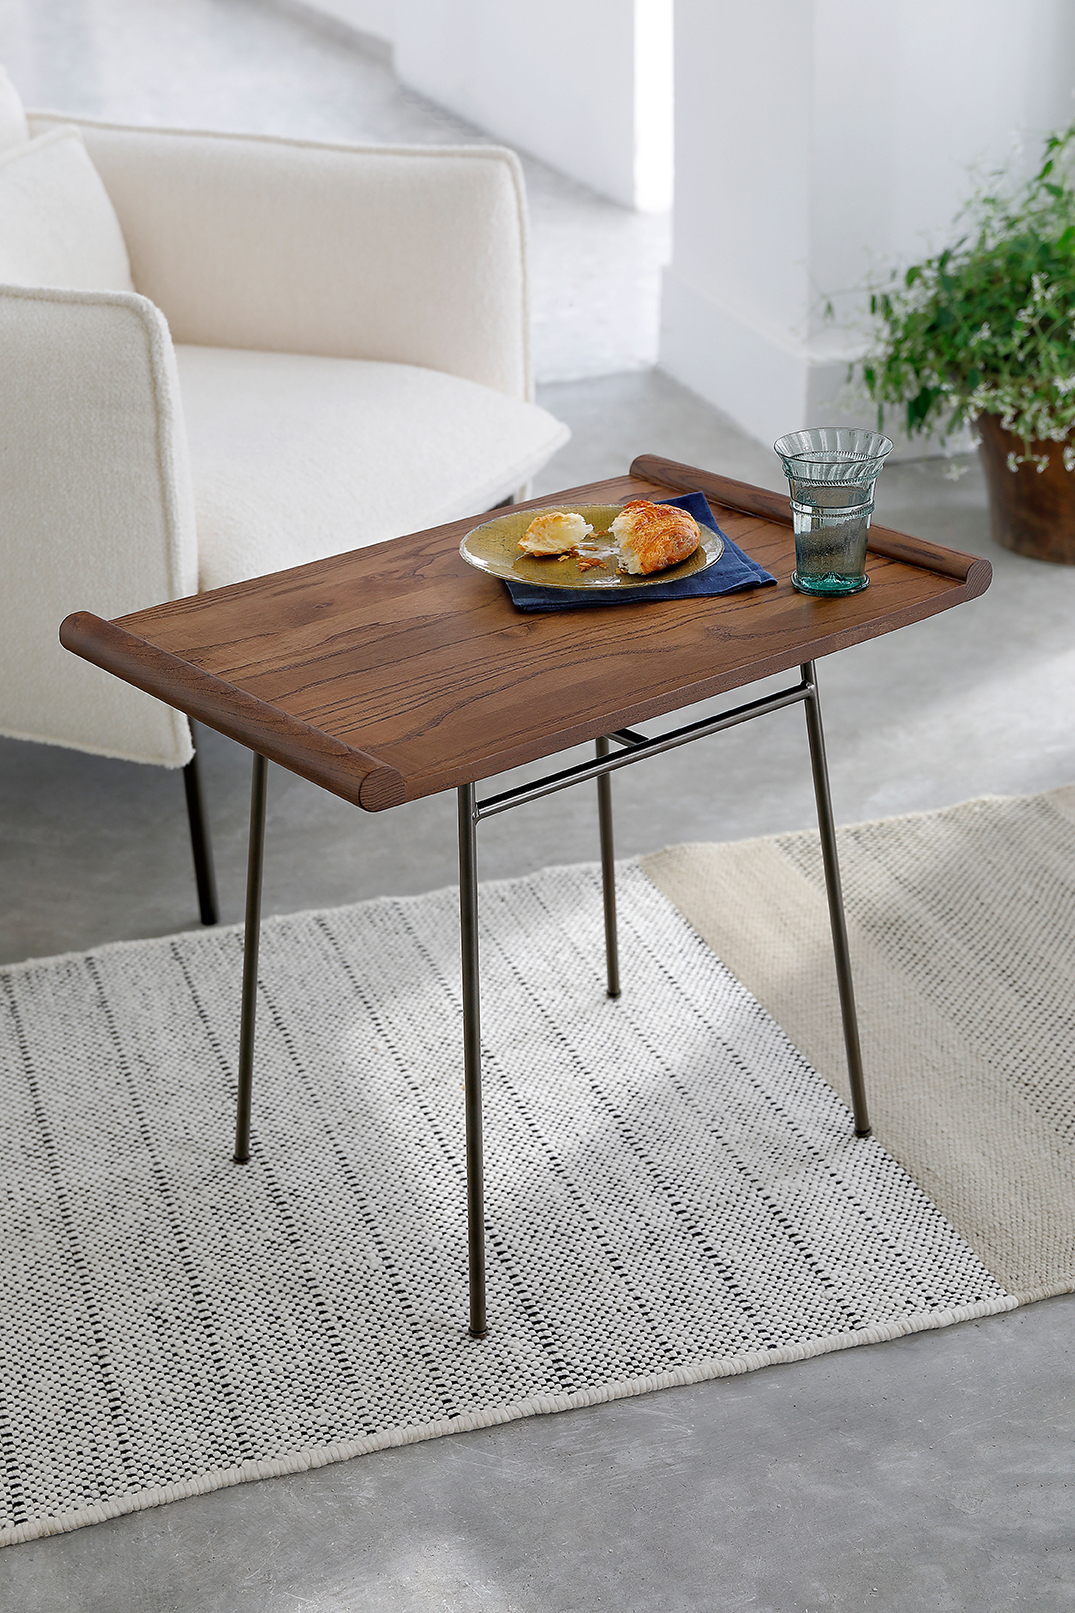 Petite table Baby